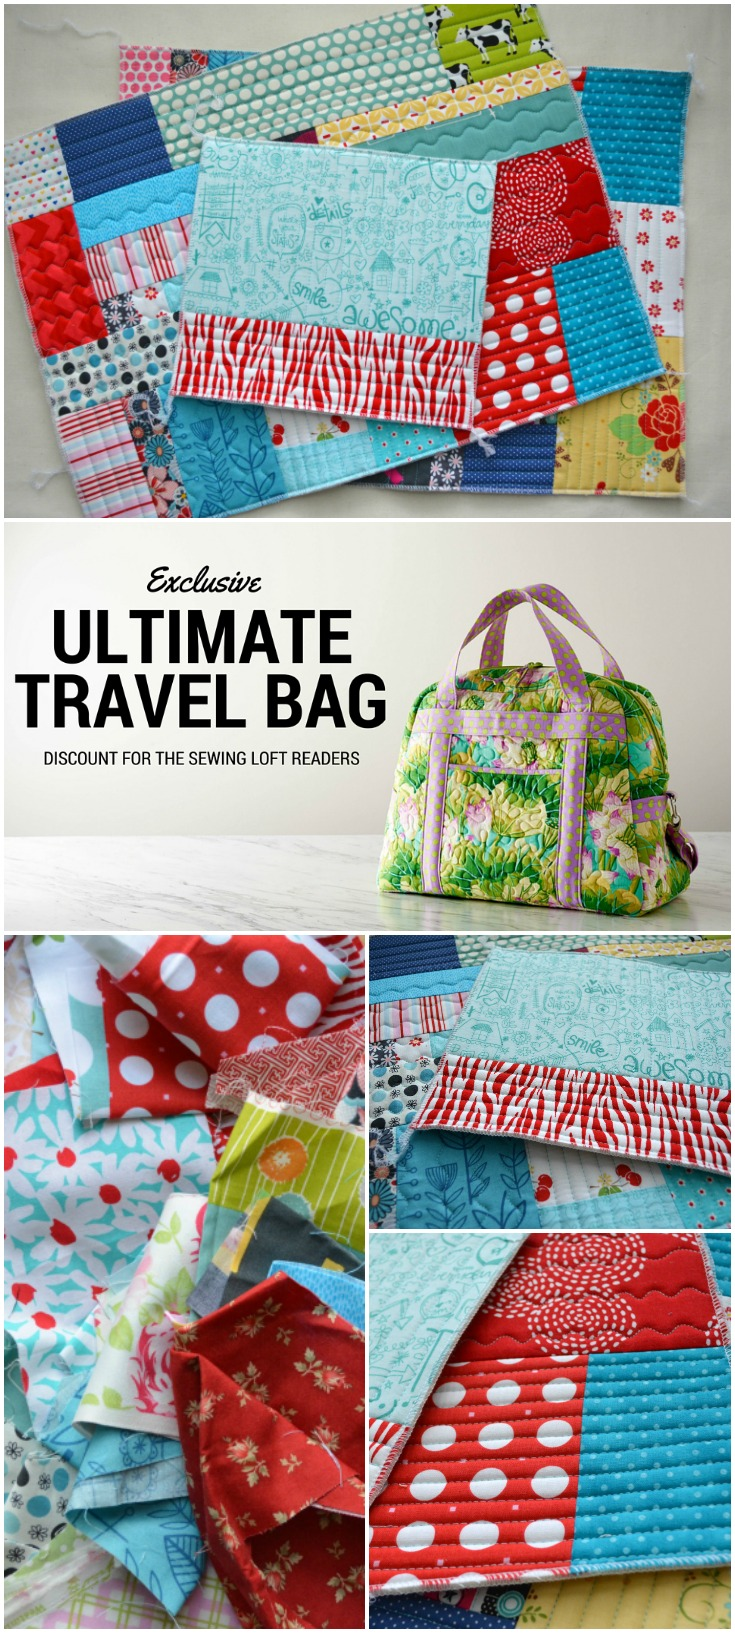 This Ultimate Travel bag class is amazing! Annie does an awesome job walking you through every step and make the process so simple to follow. I'm making my bag from scraps and love the way it's turning out!